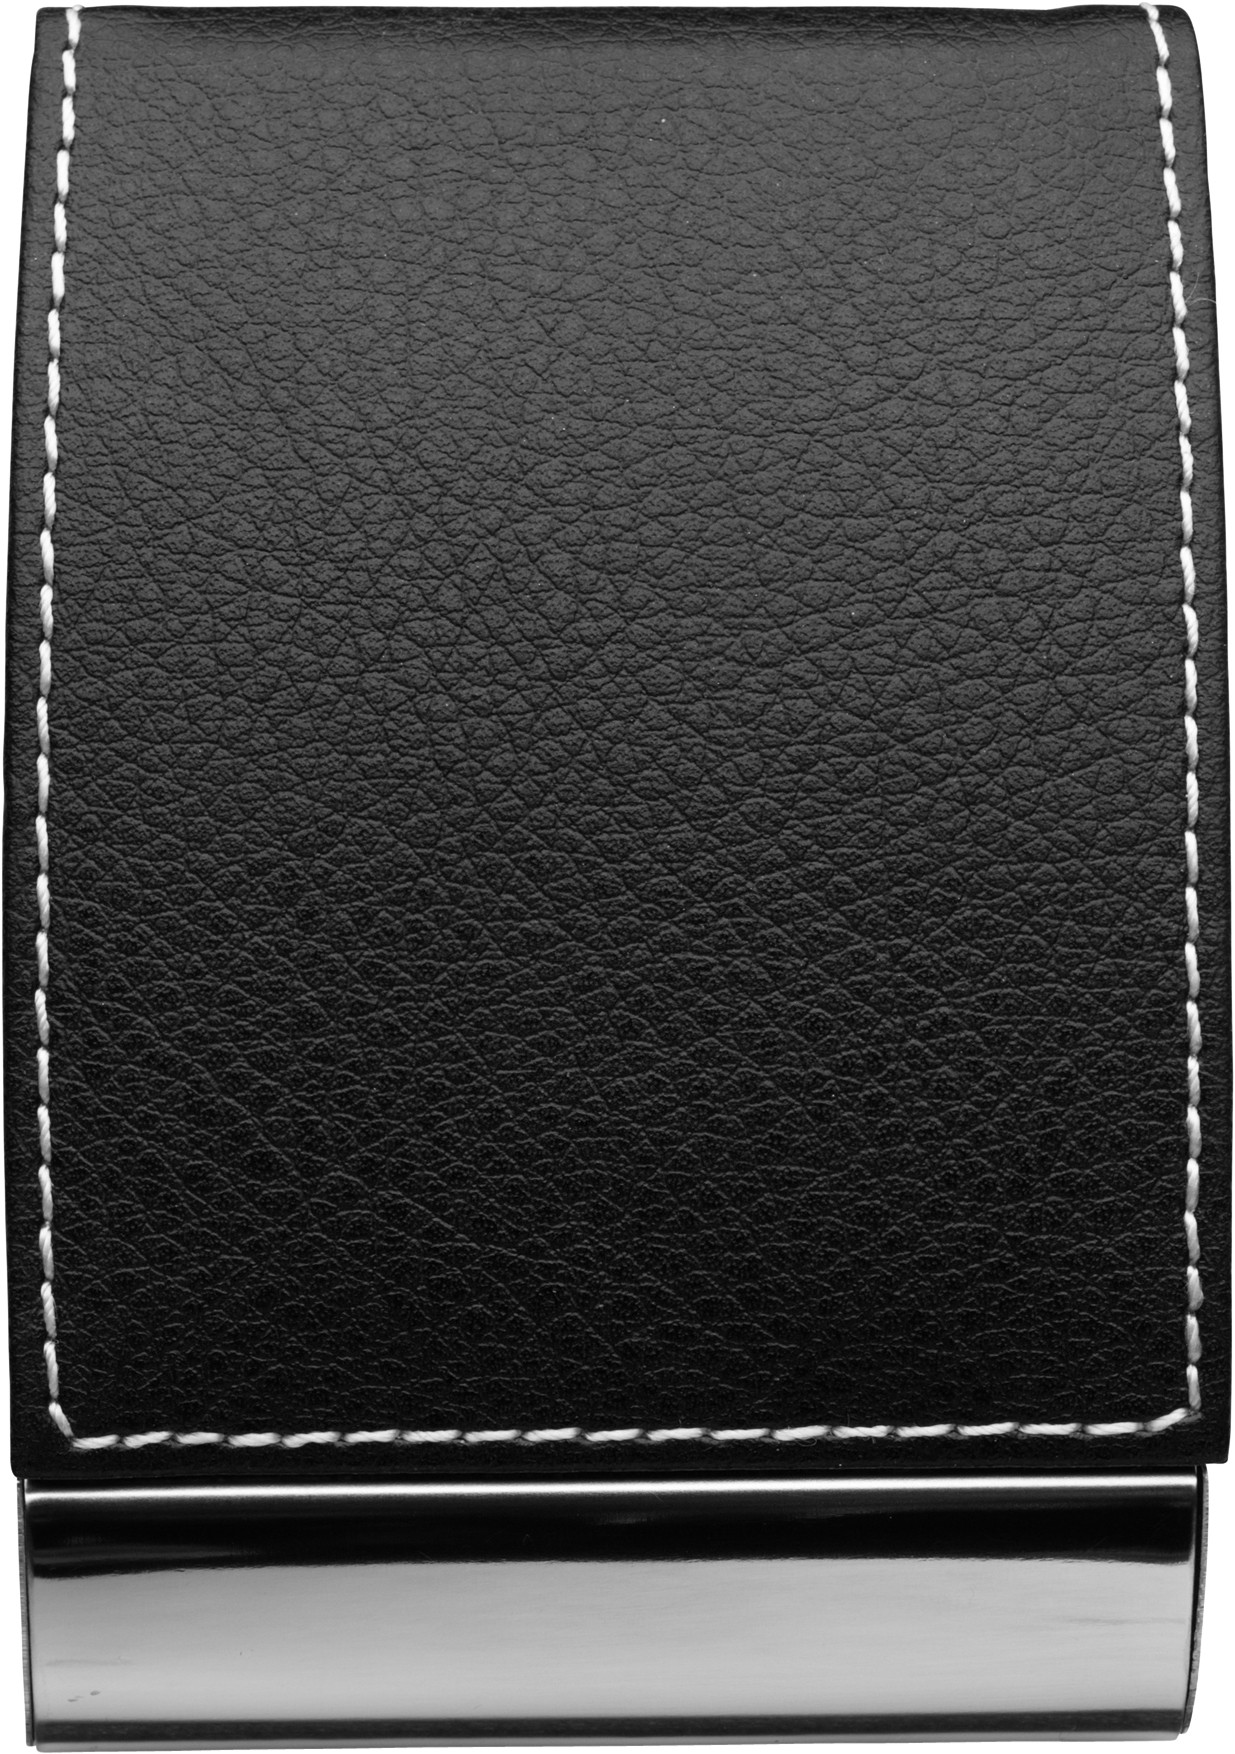 Business card holder, Black/silver (Imitation leather / textile ...